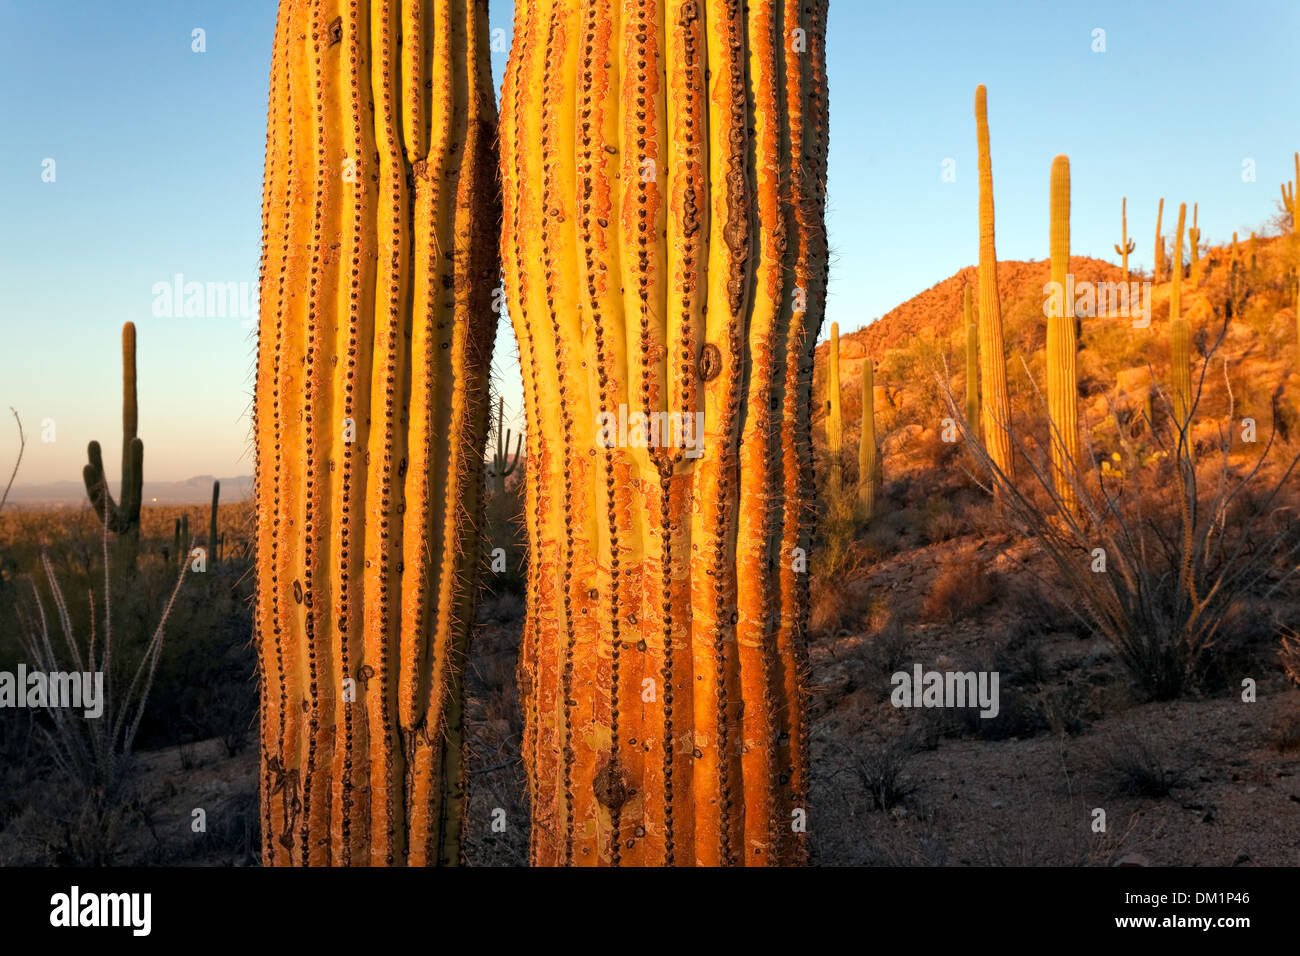 Giant Saguaro Cactus (Carnegiea gigantea), Saguaro West National Park, Tucson, Arizona - Stock Image